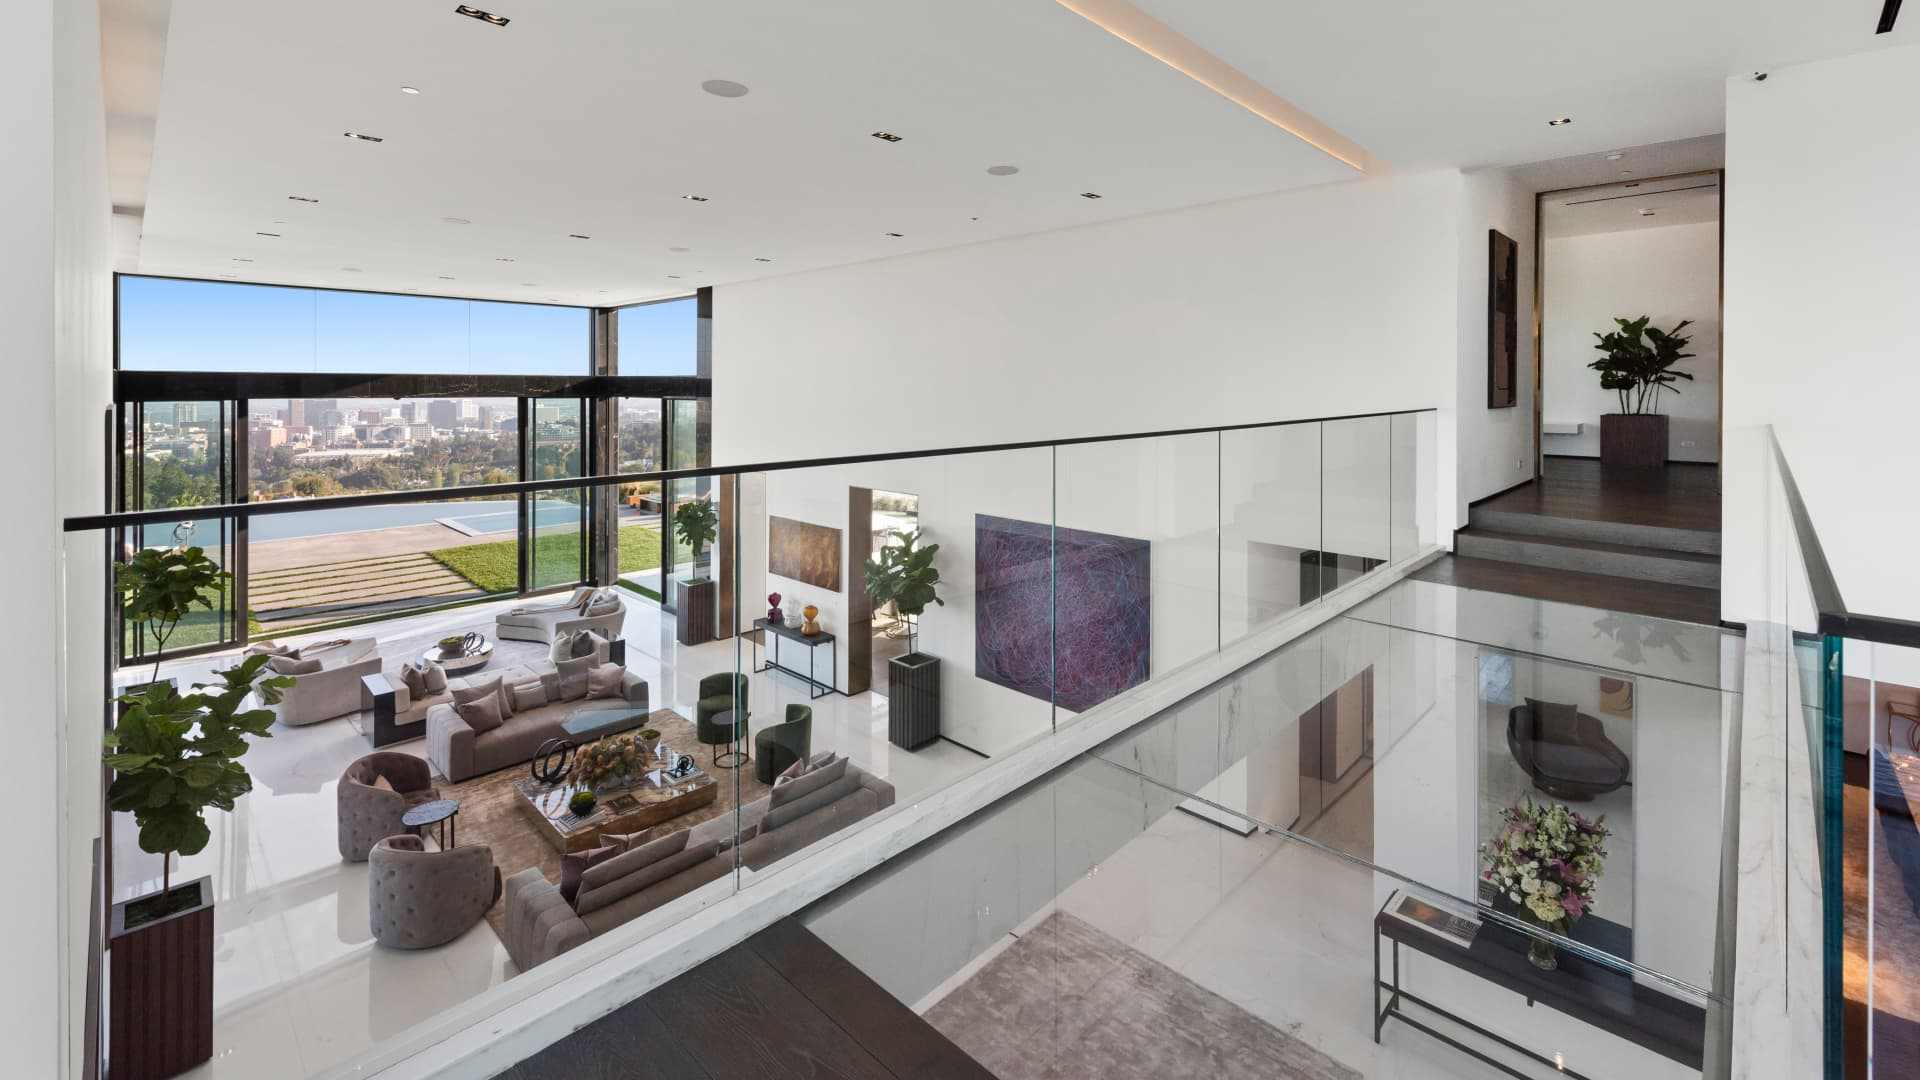 A glass-and-marble bridge overlooks the living room and leads to the owner's wing.